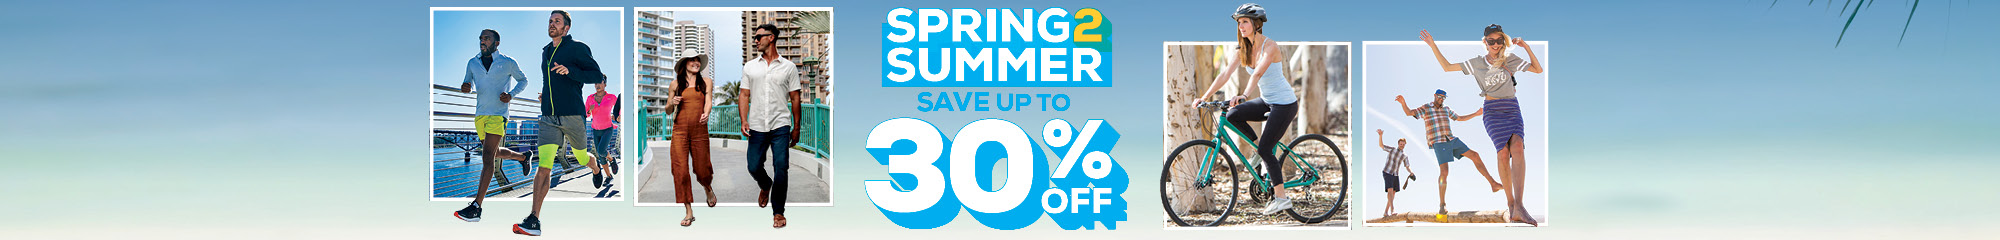 Spring to Summer Sale. Save up to 30% off.